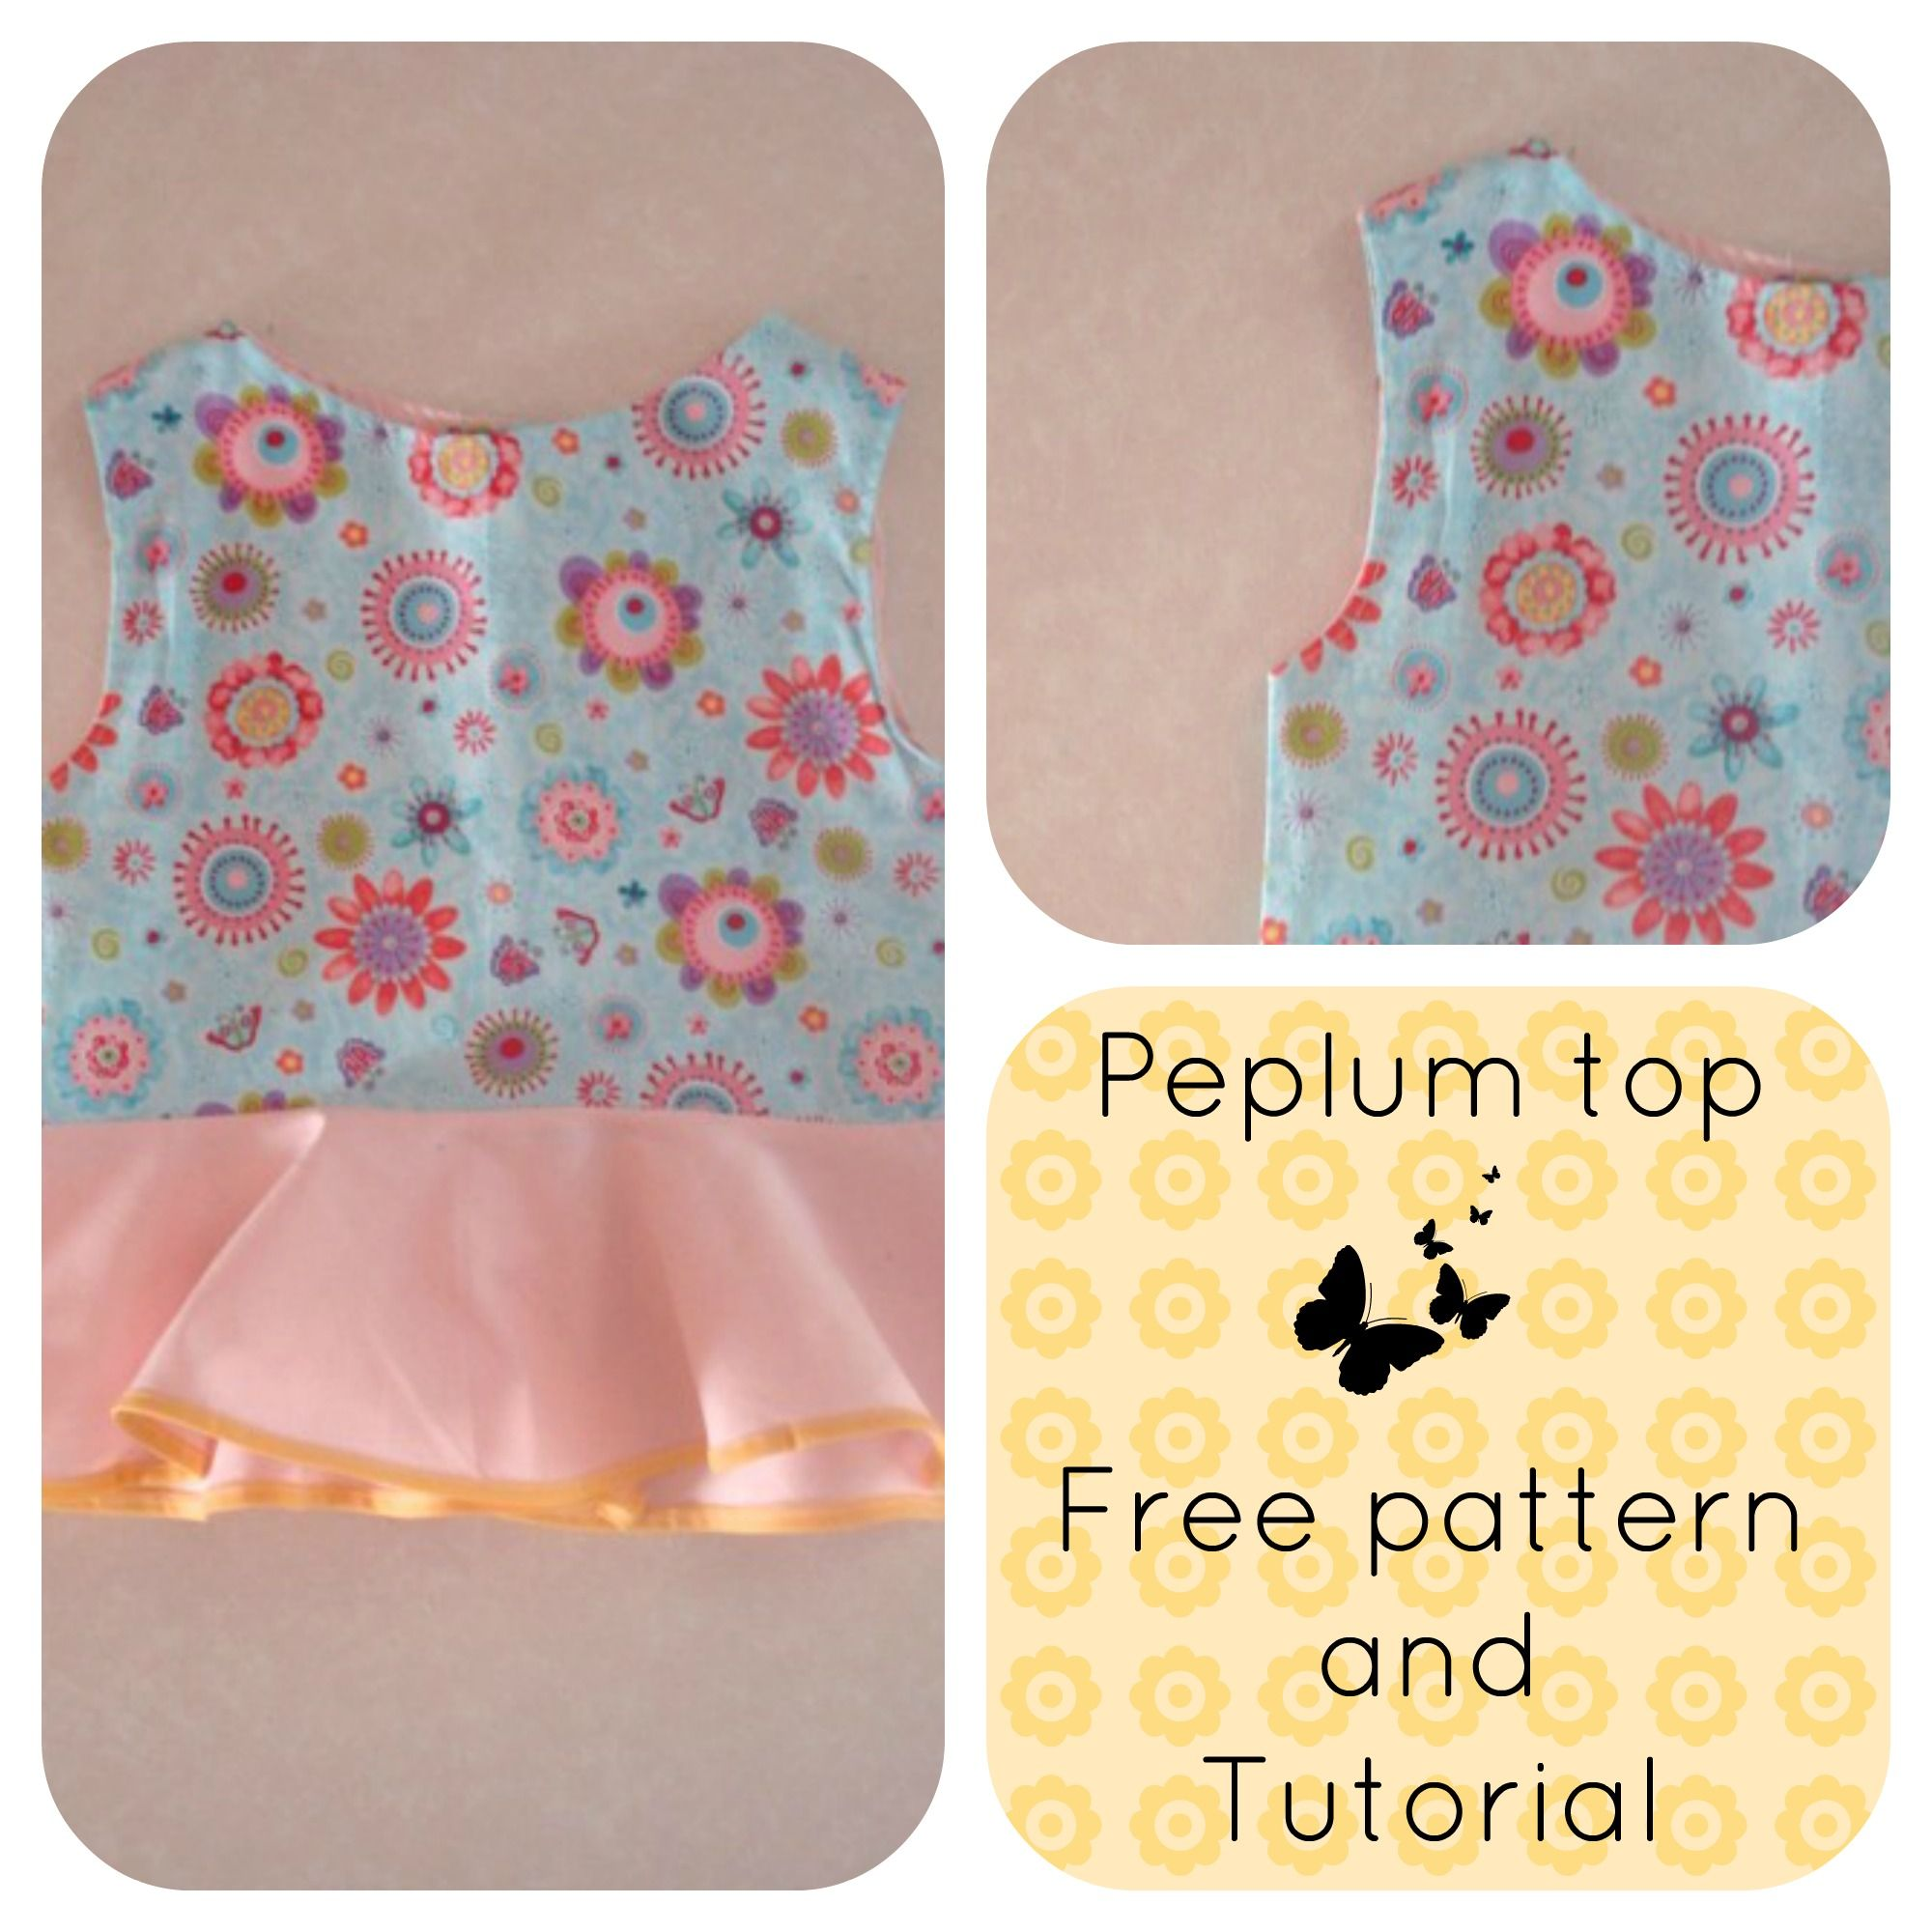 FREE peplum top pattern #freesewingpattern | FREE sewing patterns ...